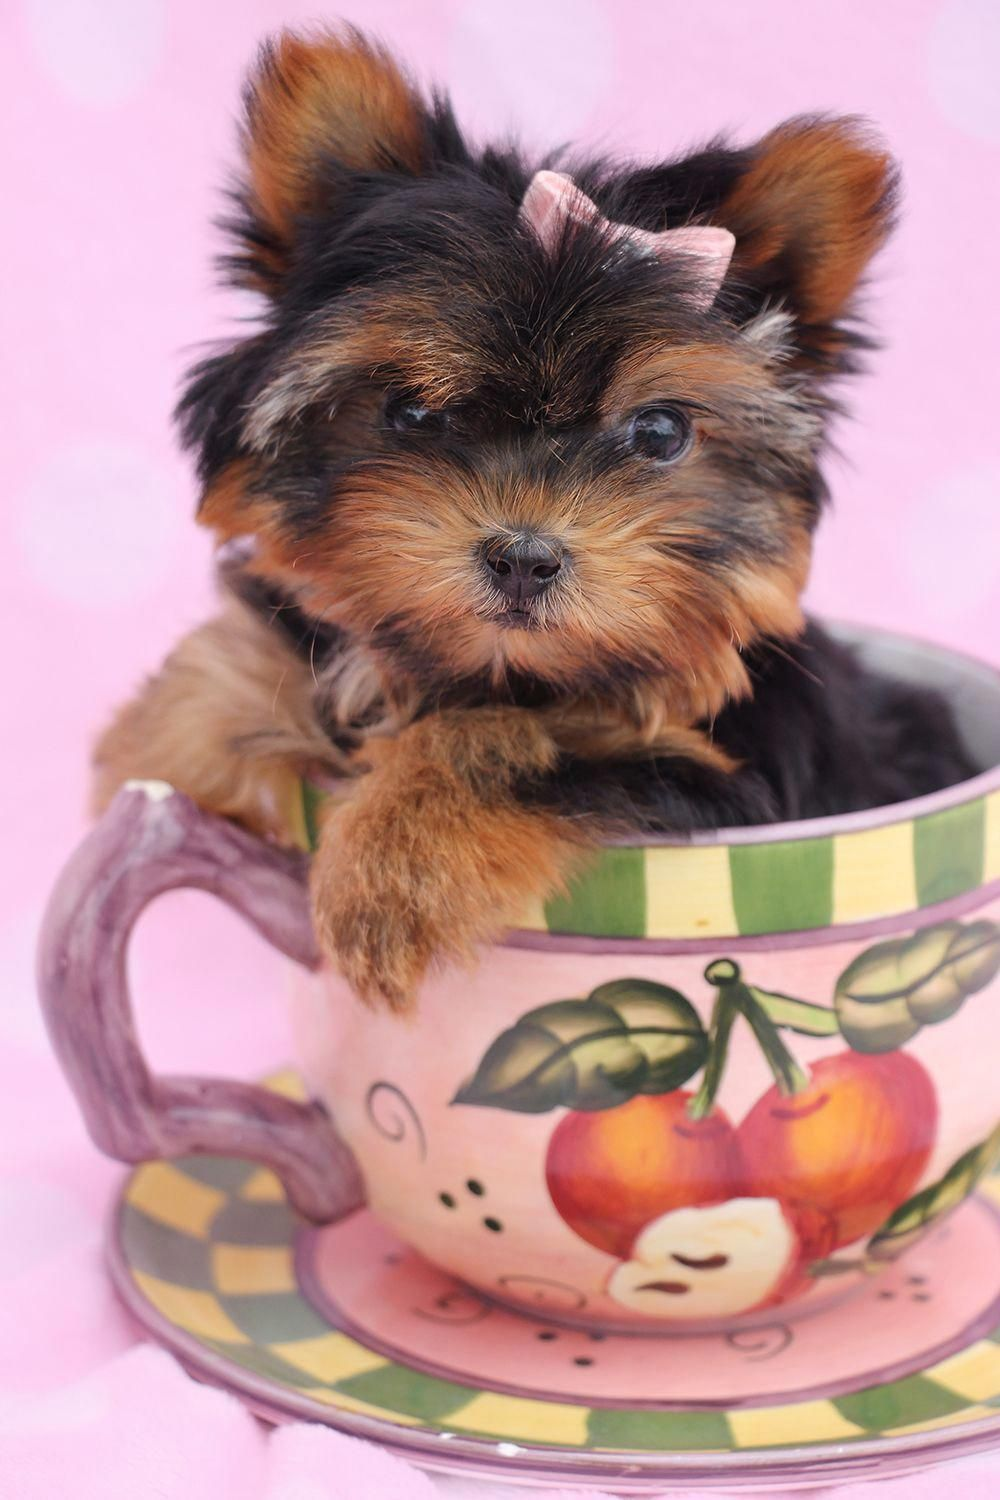 Tea Cup Yorkshire Terrier Yorkie Puppy Yorkshireterrierpuppies Yorkshire Terrier Puppies Yorkshire Terrier Teacup Puppies For Sale